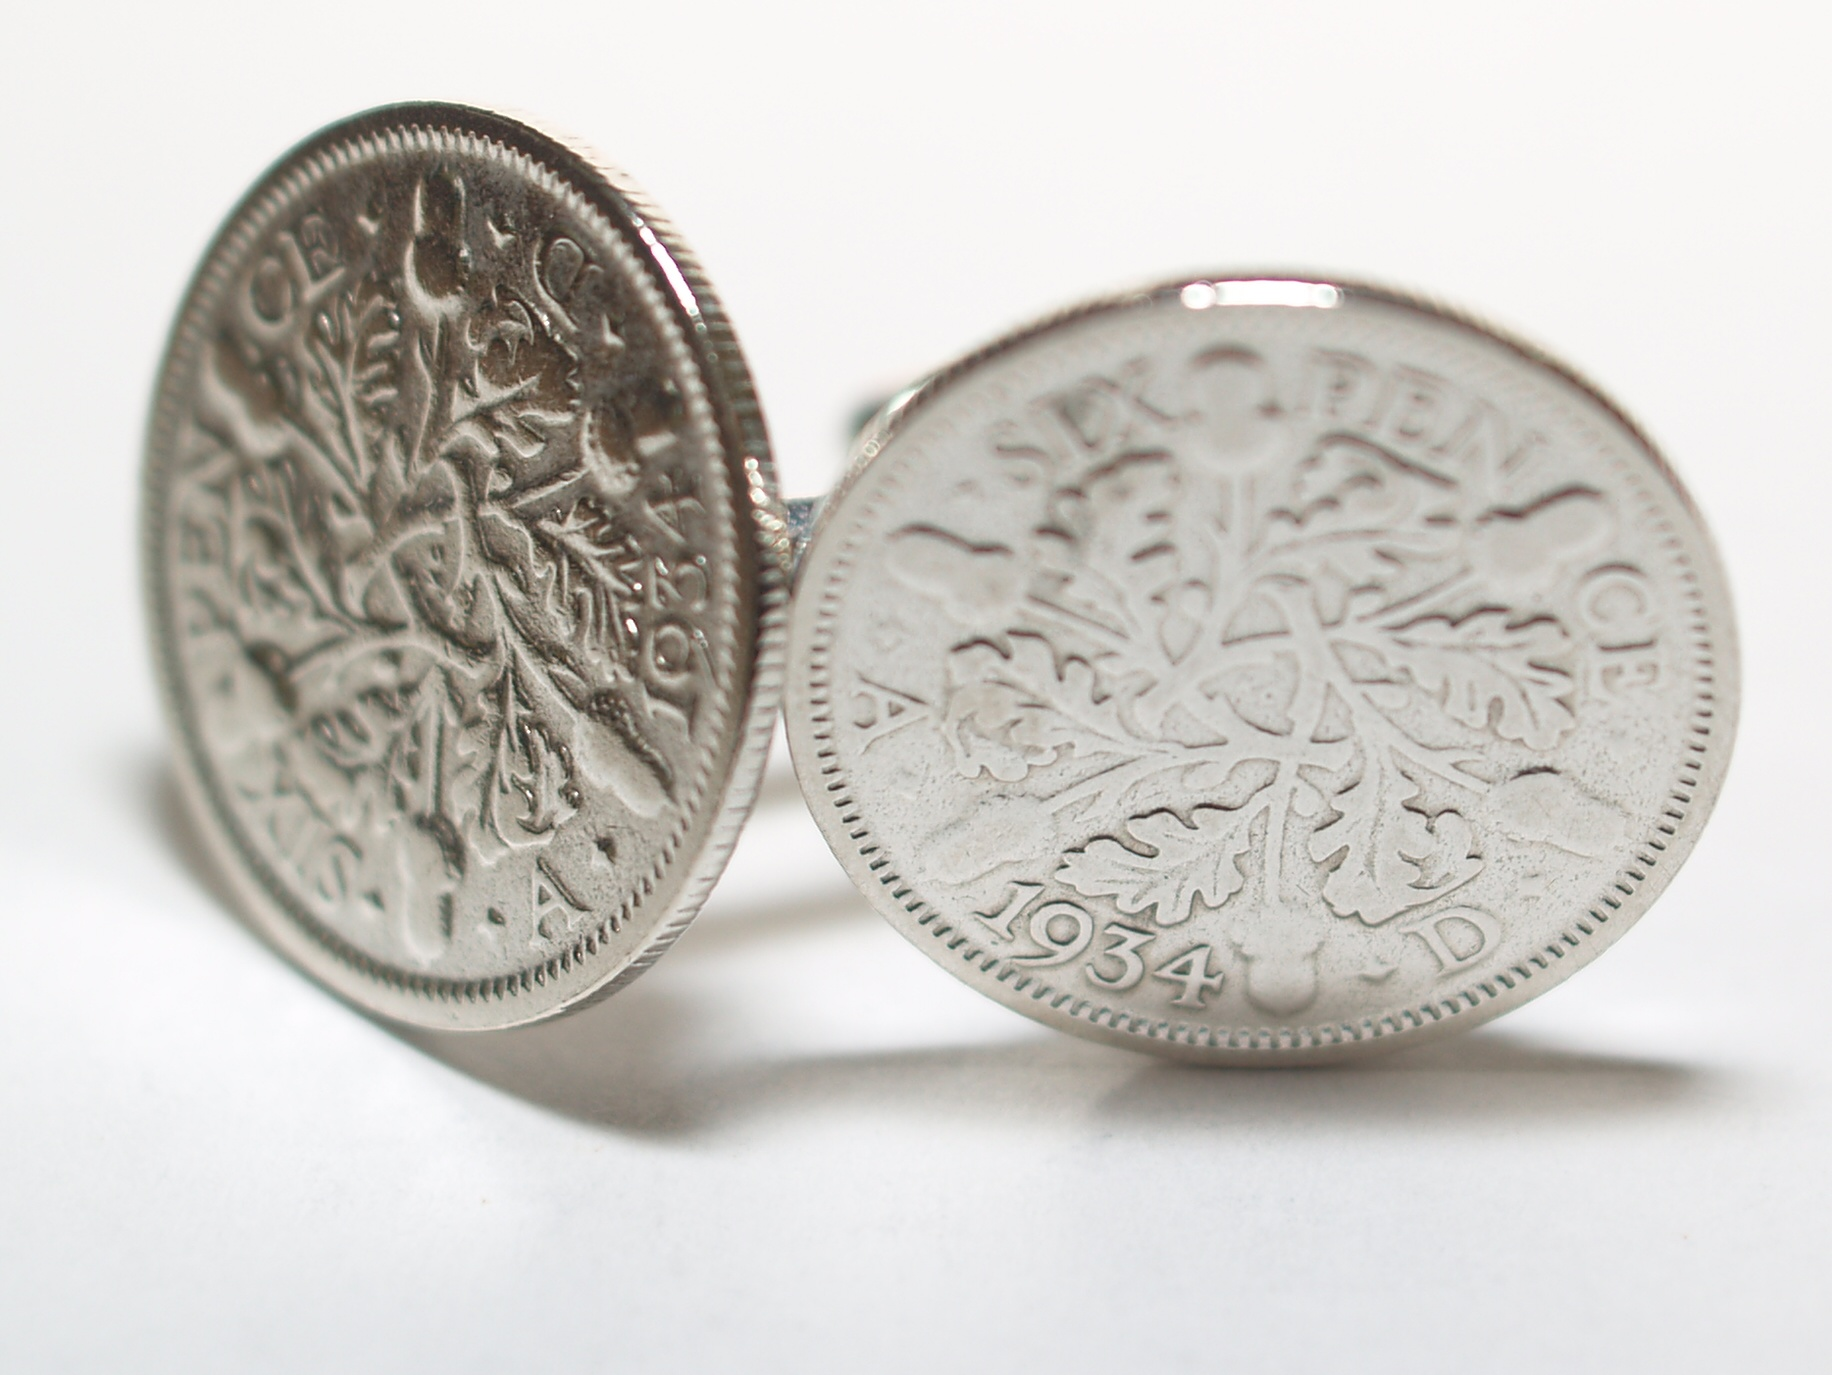 Sixpence for luck 1934 86th Birthday Cufflinks - WOW great gift - Cufflink box